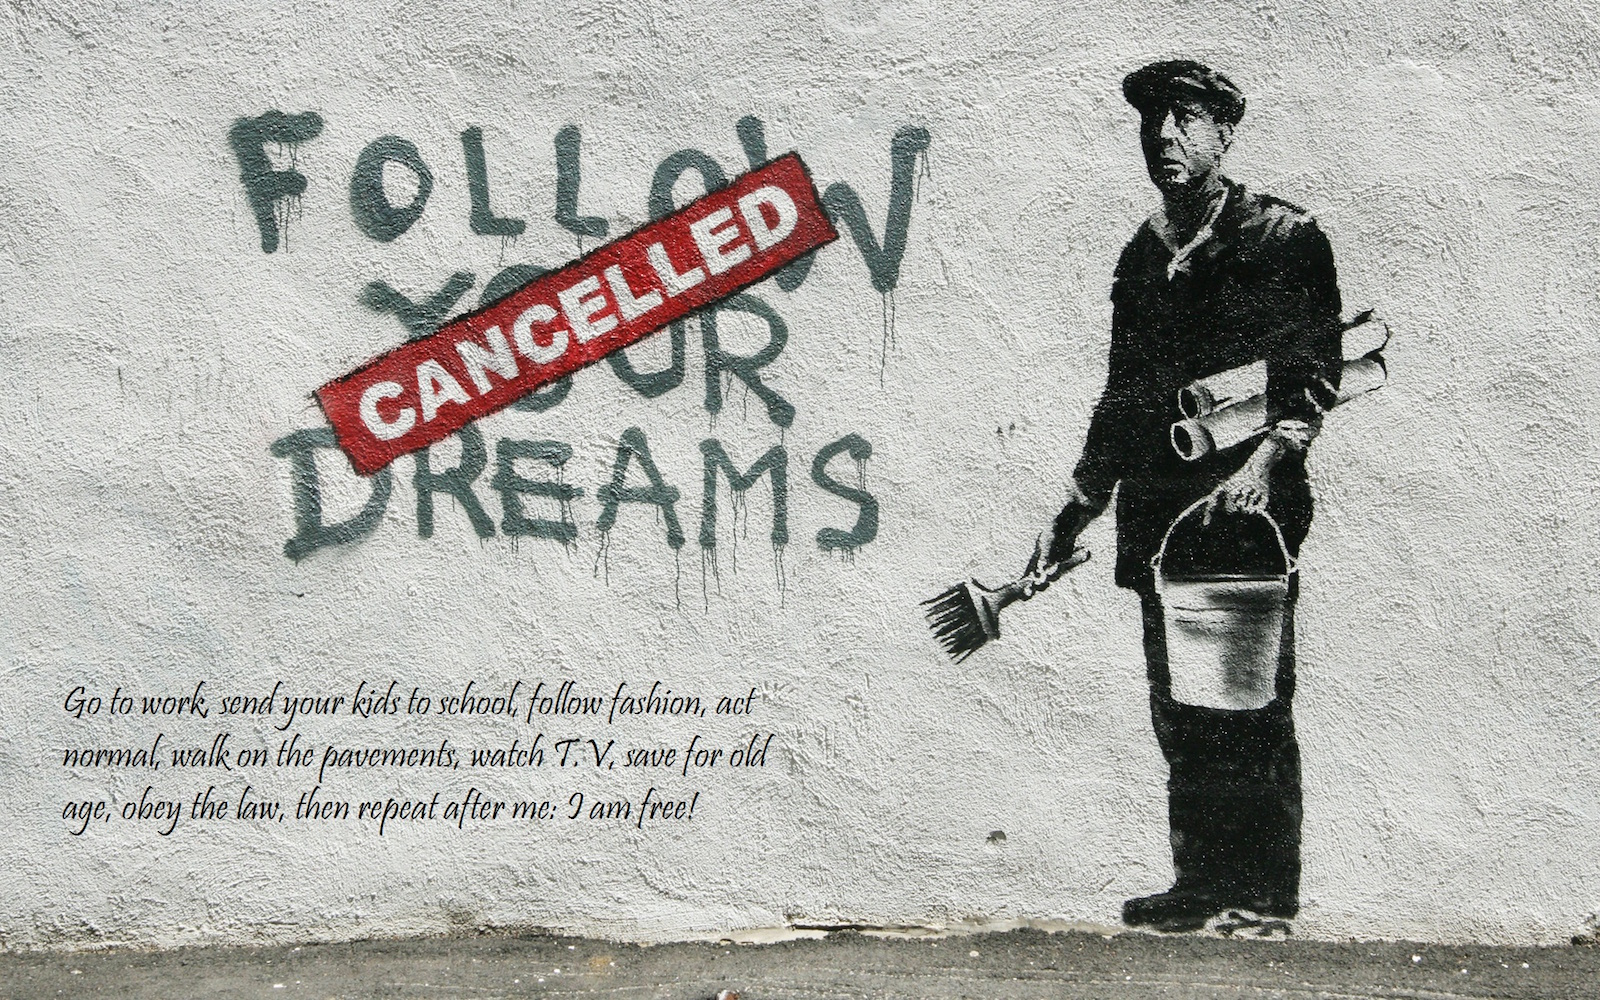 cancelled-dreams